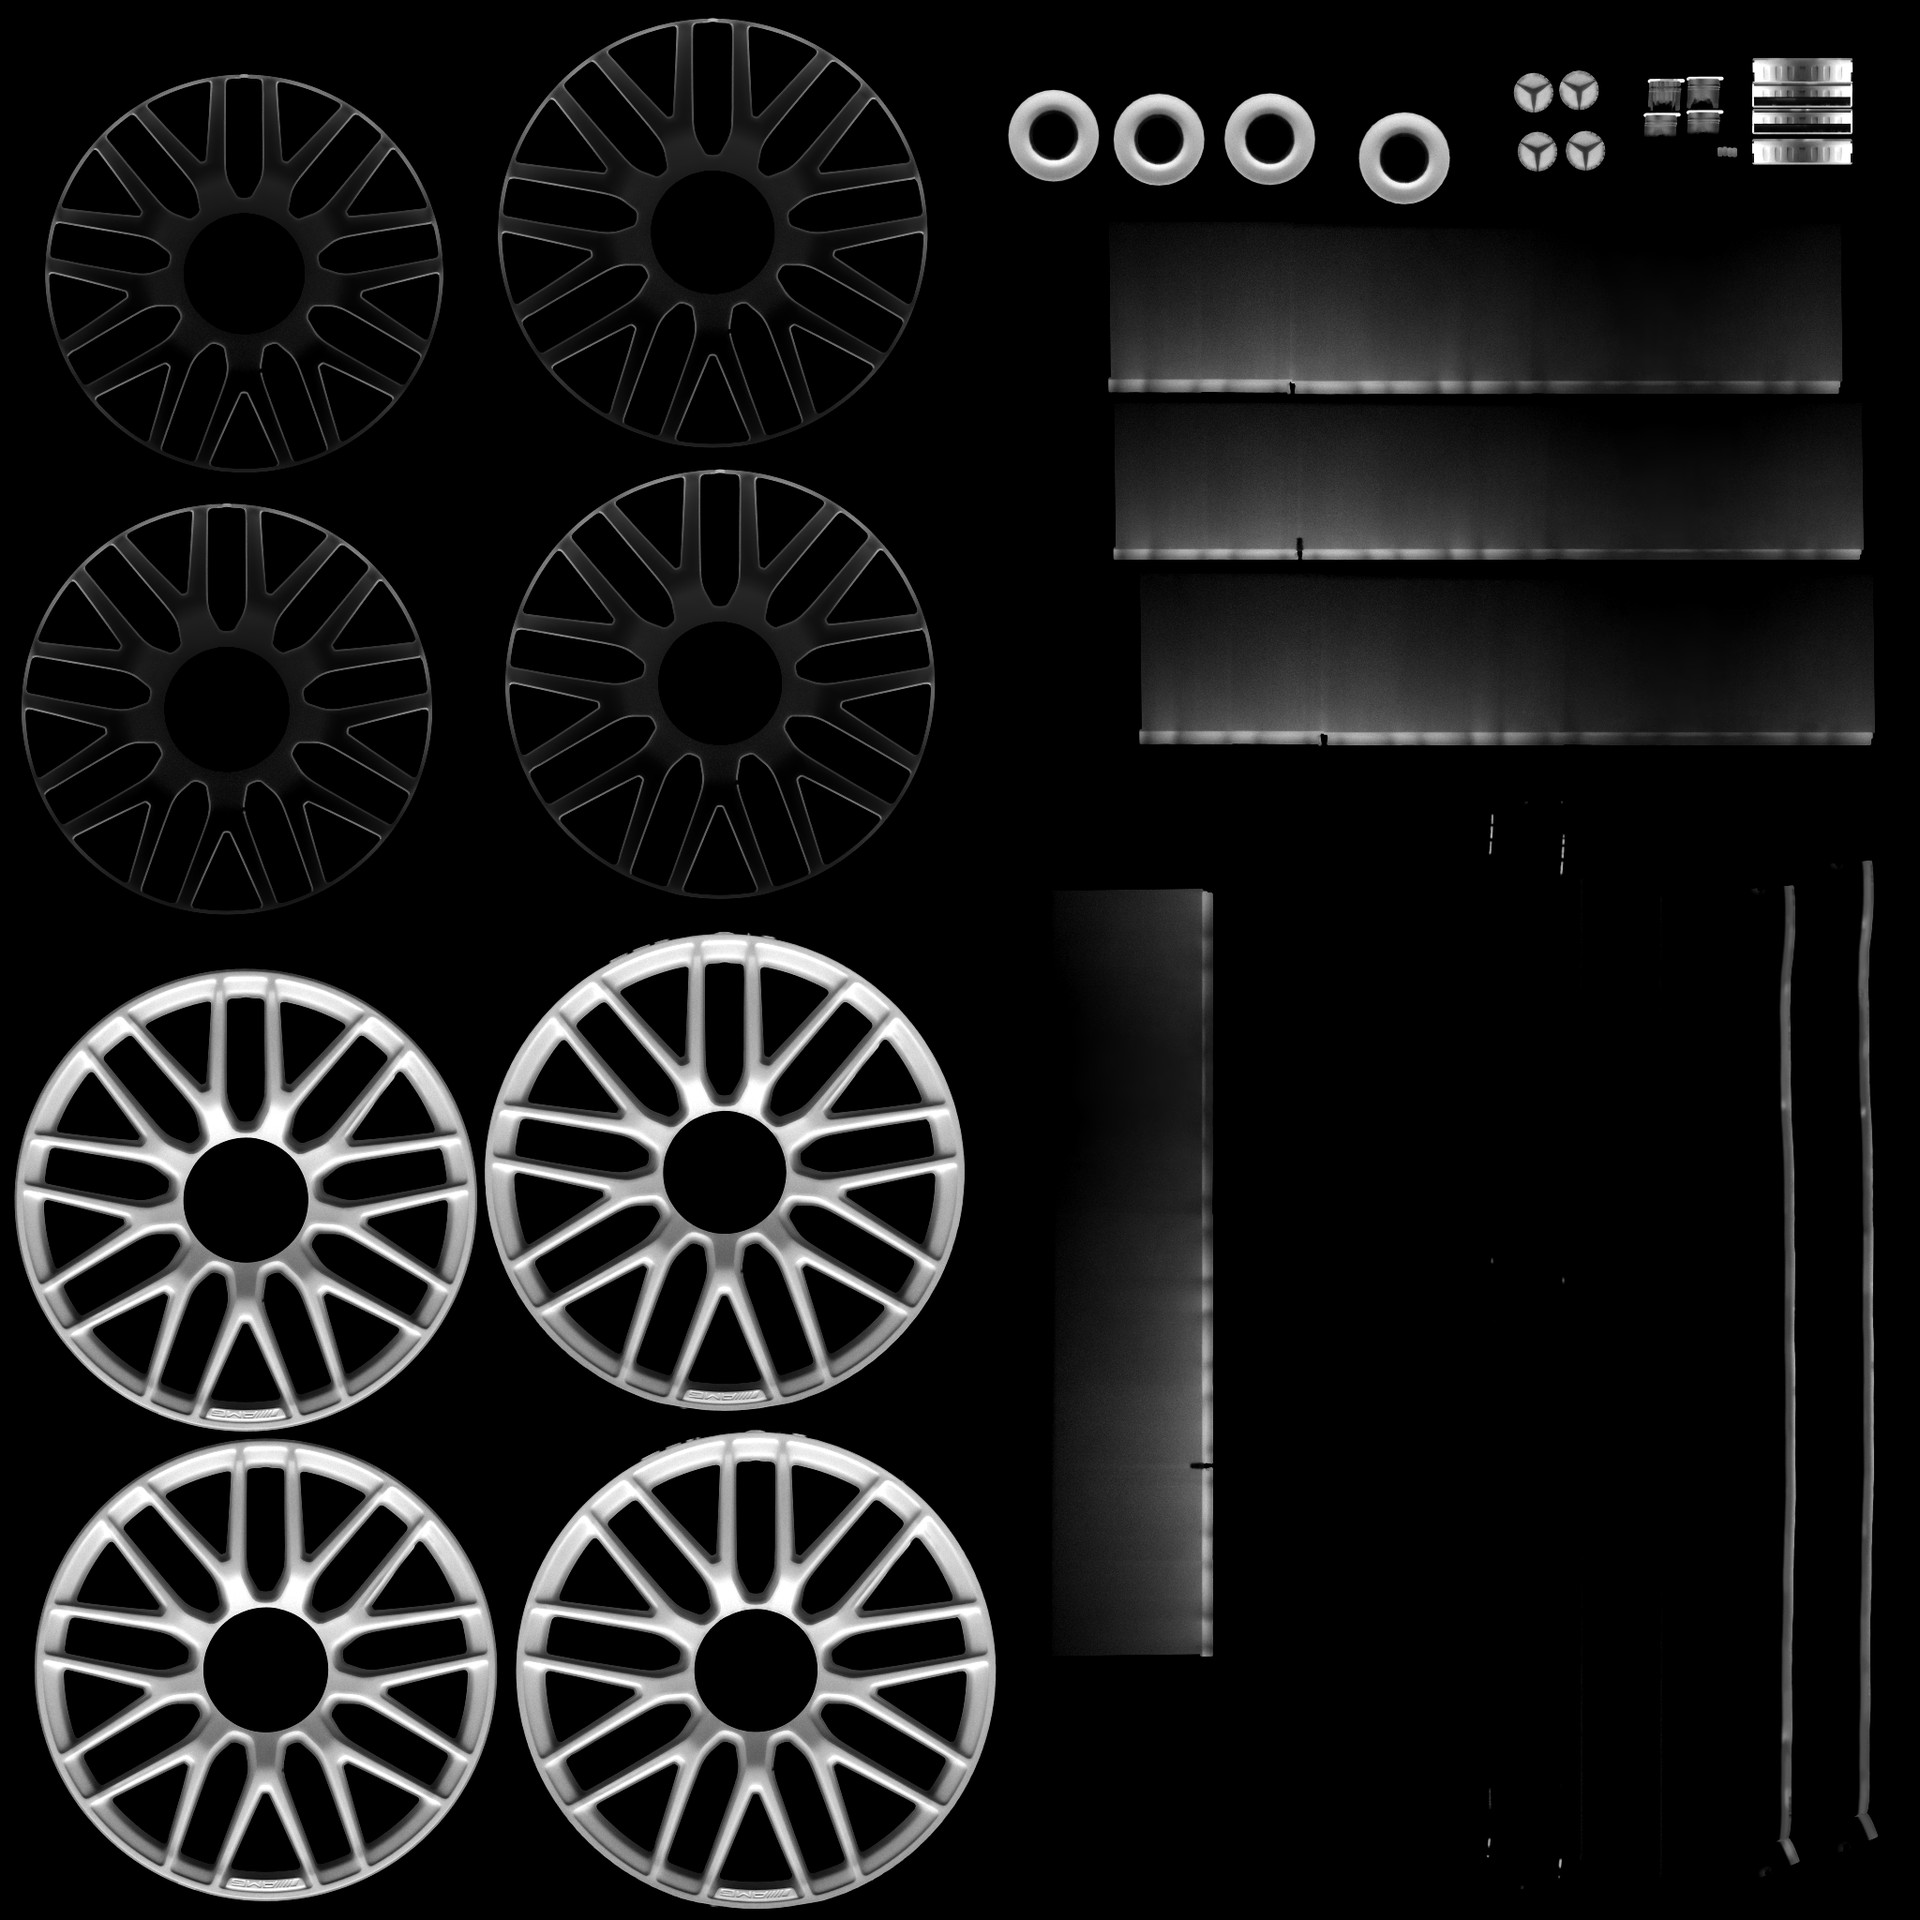 Wheel ambient occlusion maps.